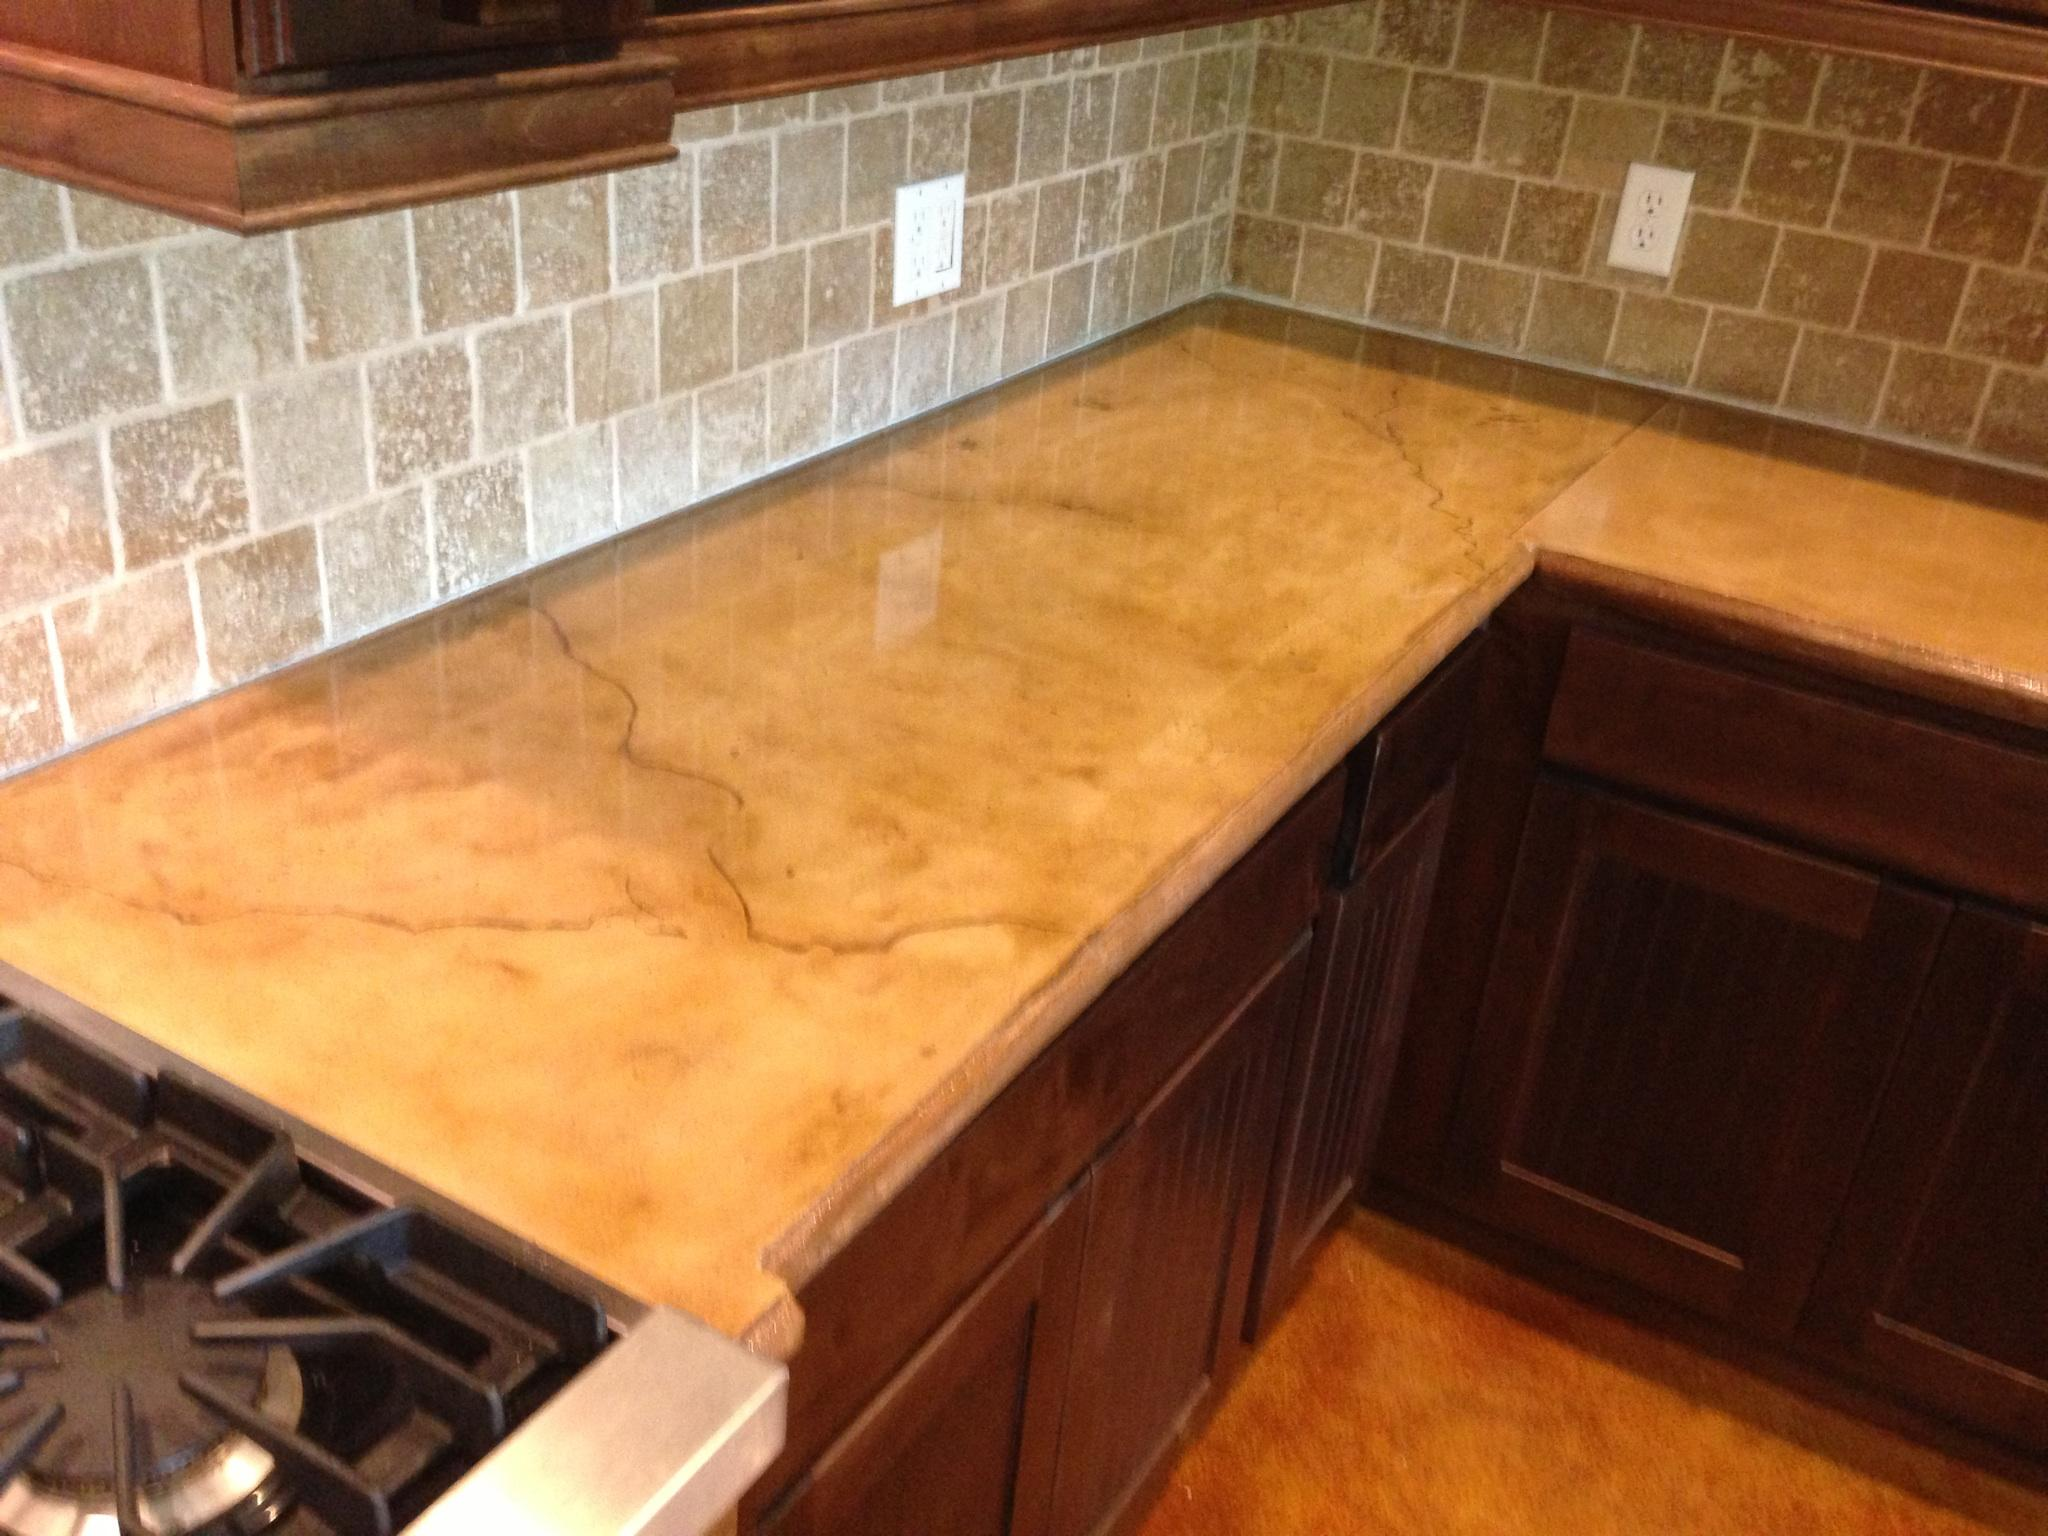 Concrete Installer Discovers Countertops